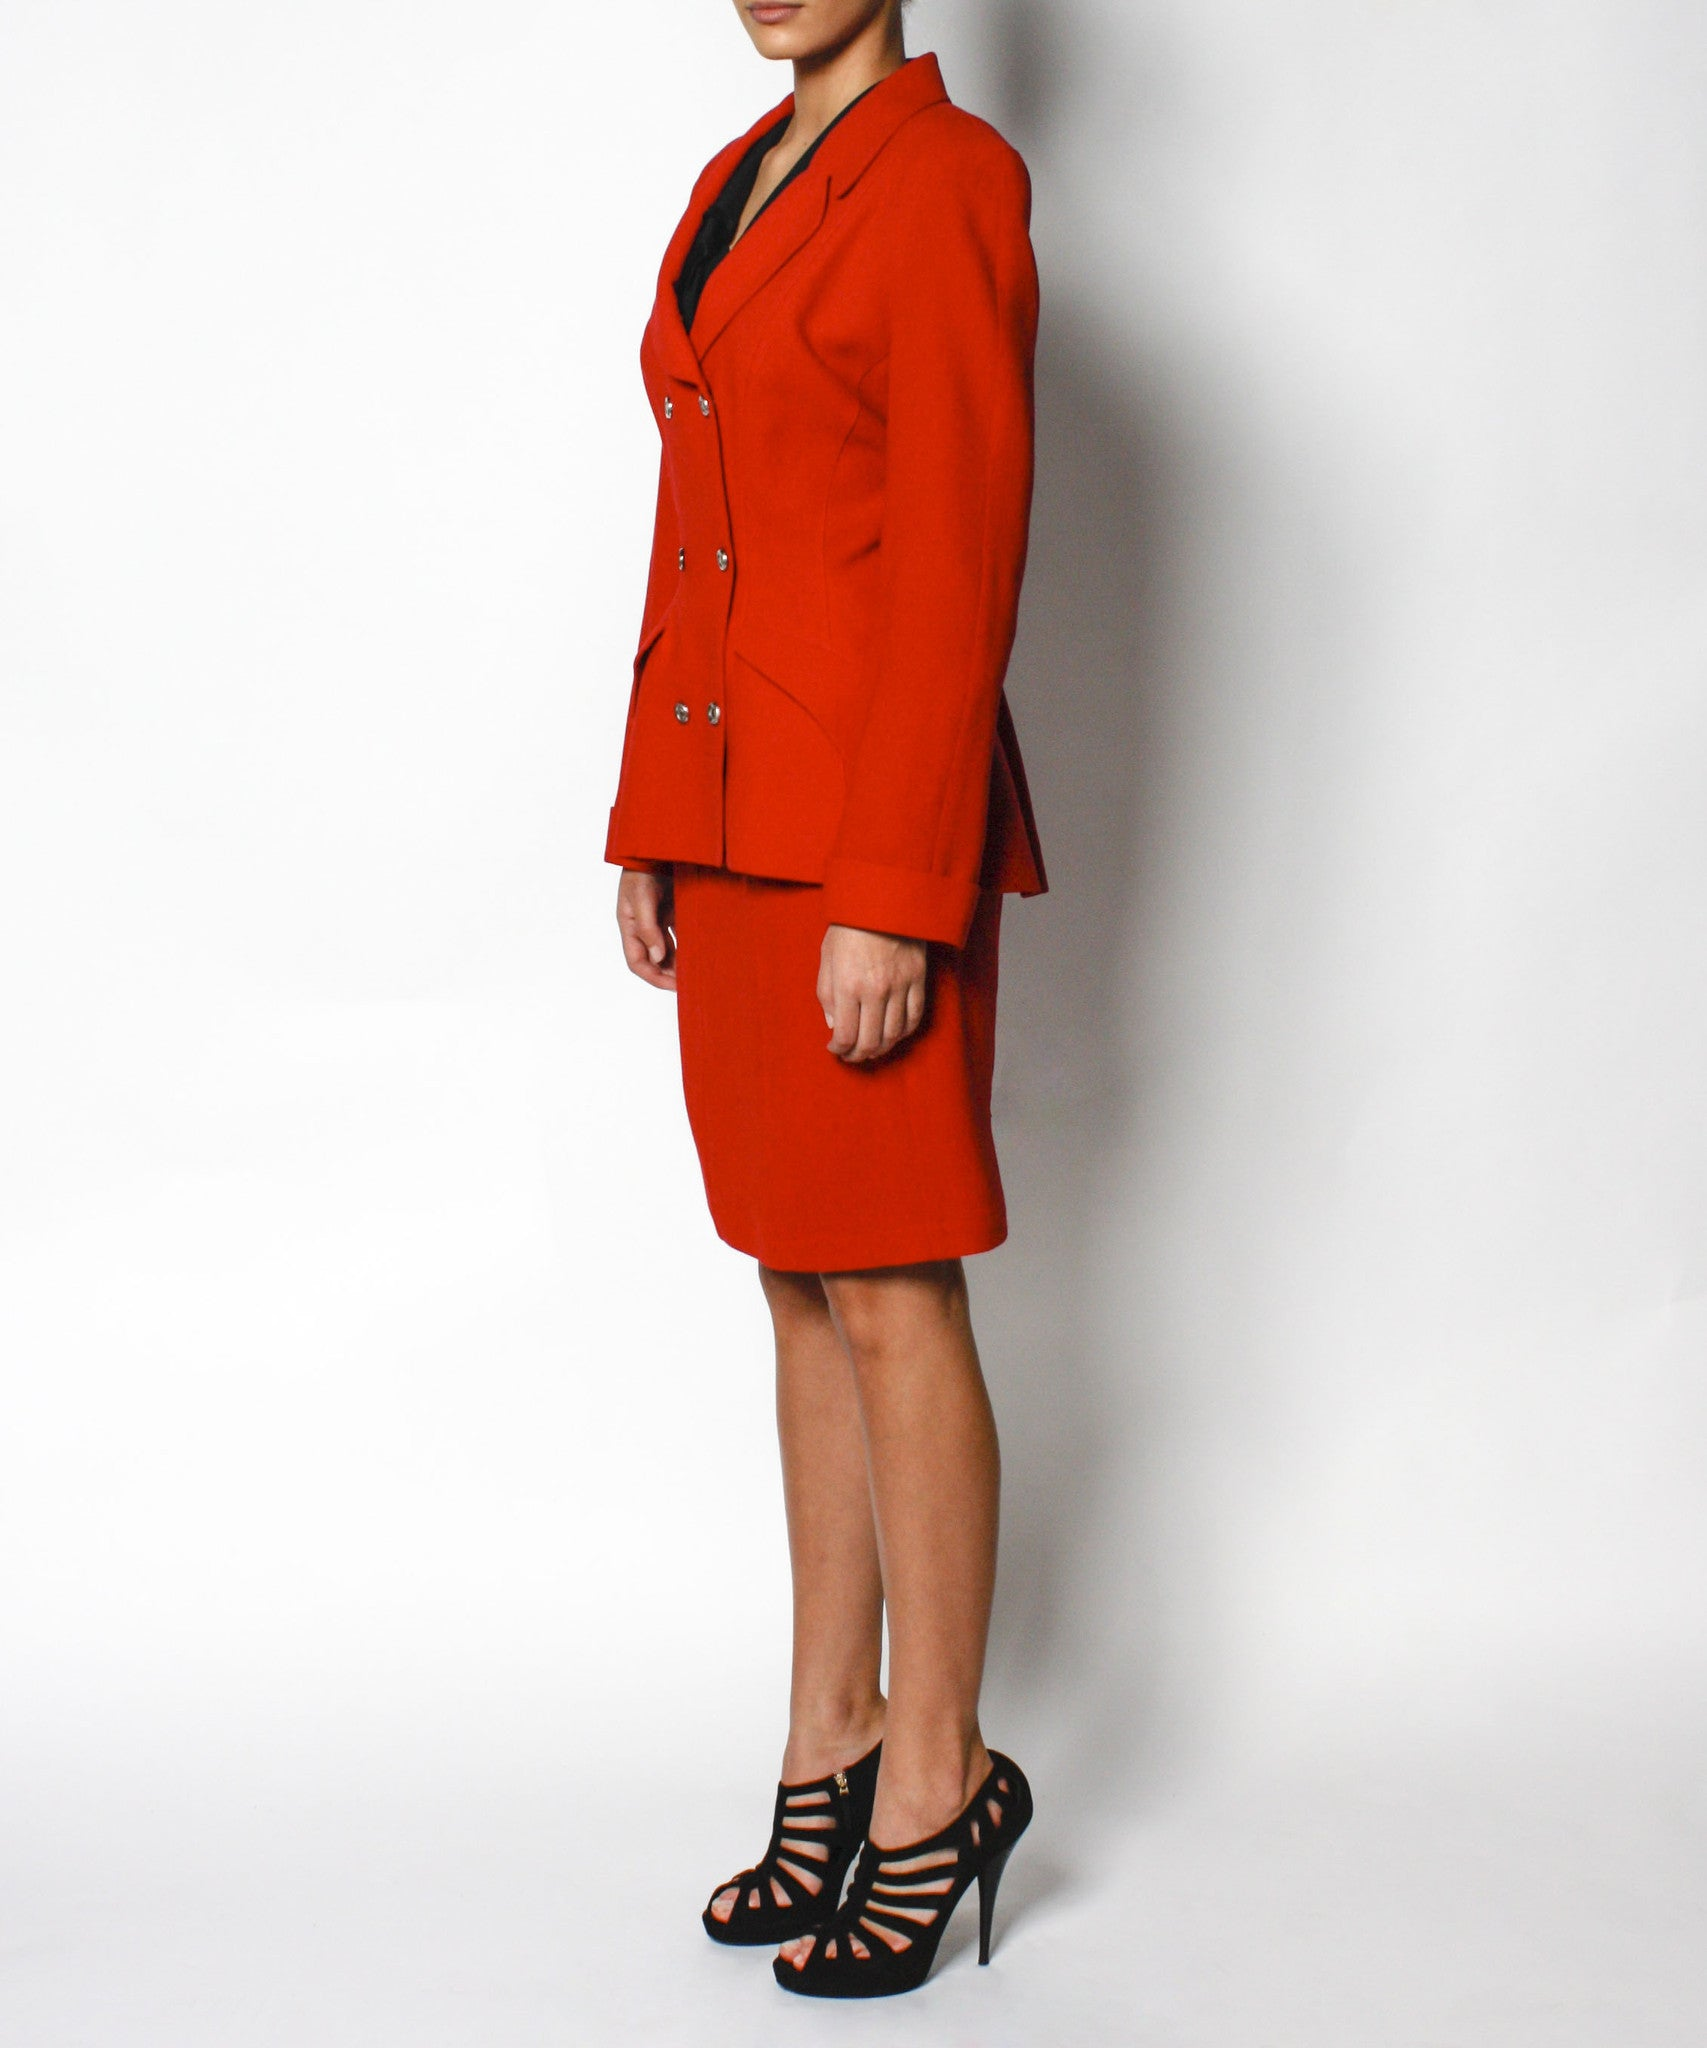 Thierry Mugler Red Double Breasted Wool Skirt Suit - C.Madeleine's